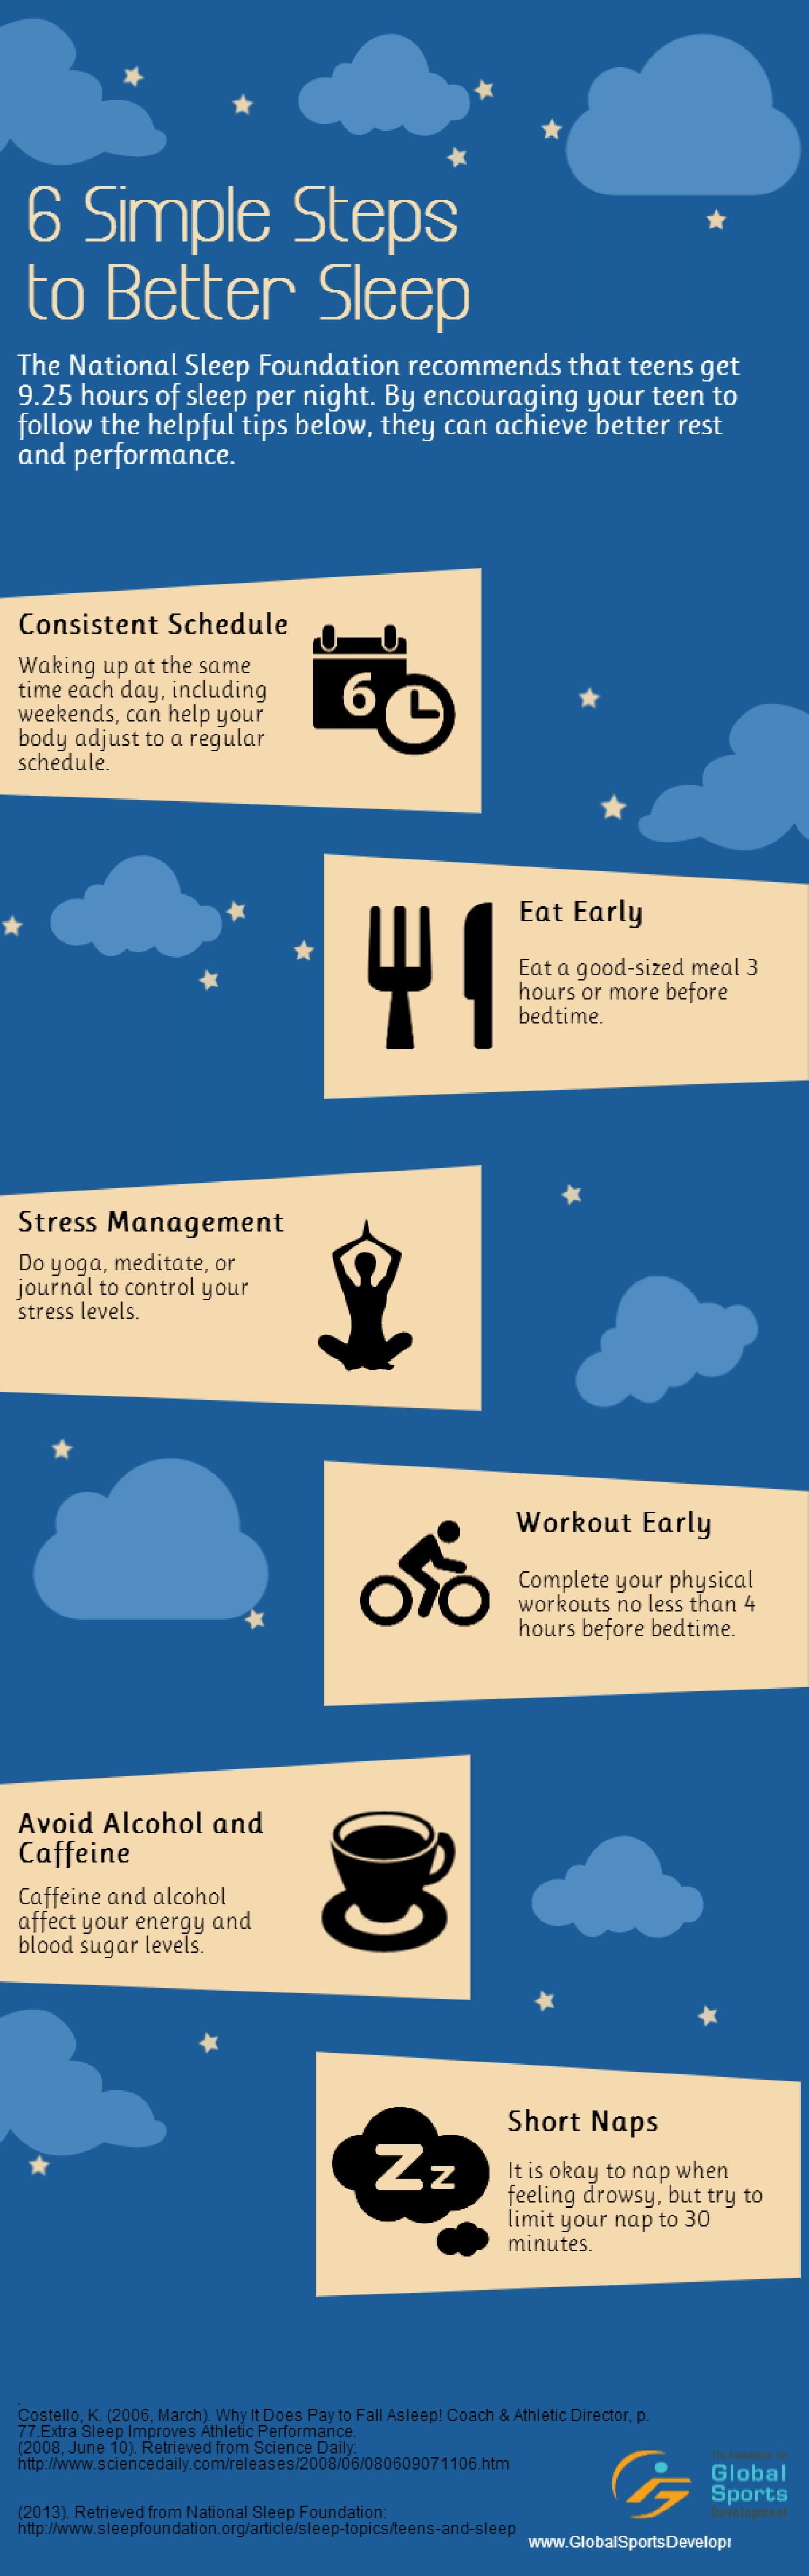 images How to sleep better – simple ways to get a good night's rest